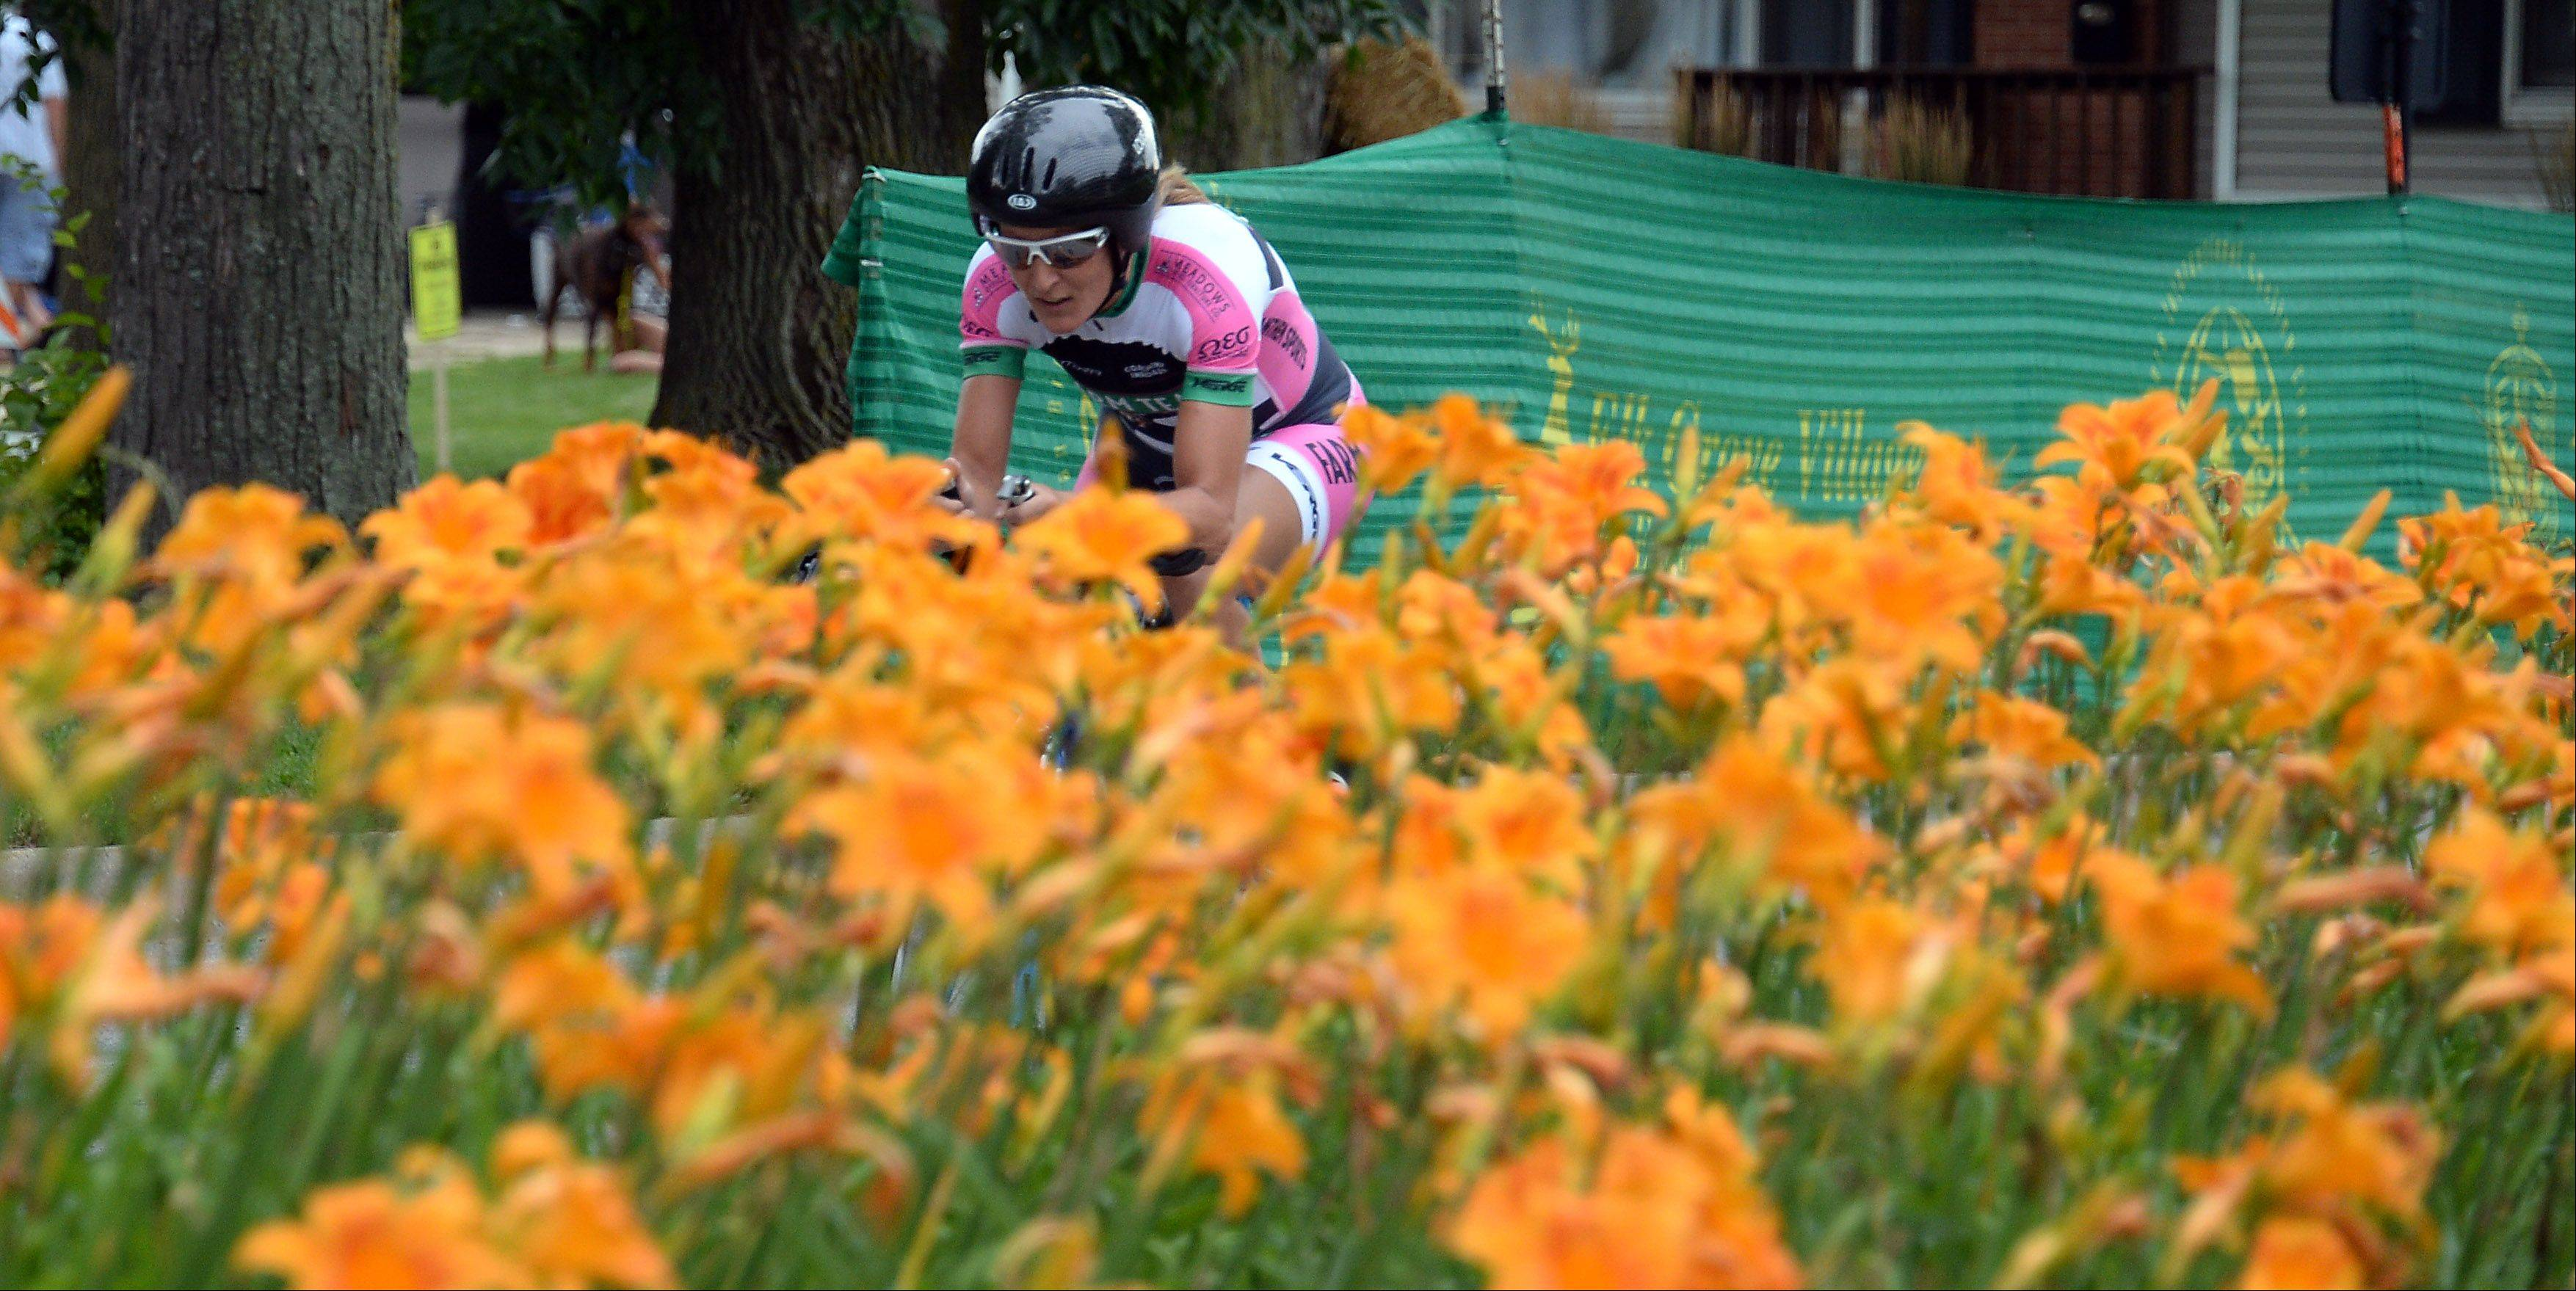 A woman biker rides past a field of flowers as she heads towards the finish line in the 2013 Alexian Brothers Tour of Elk Grove Woodfield Chicago Northwest Convention Bureau Pro Women's time trials on day one of the three-day event.